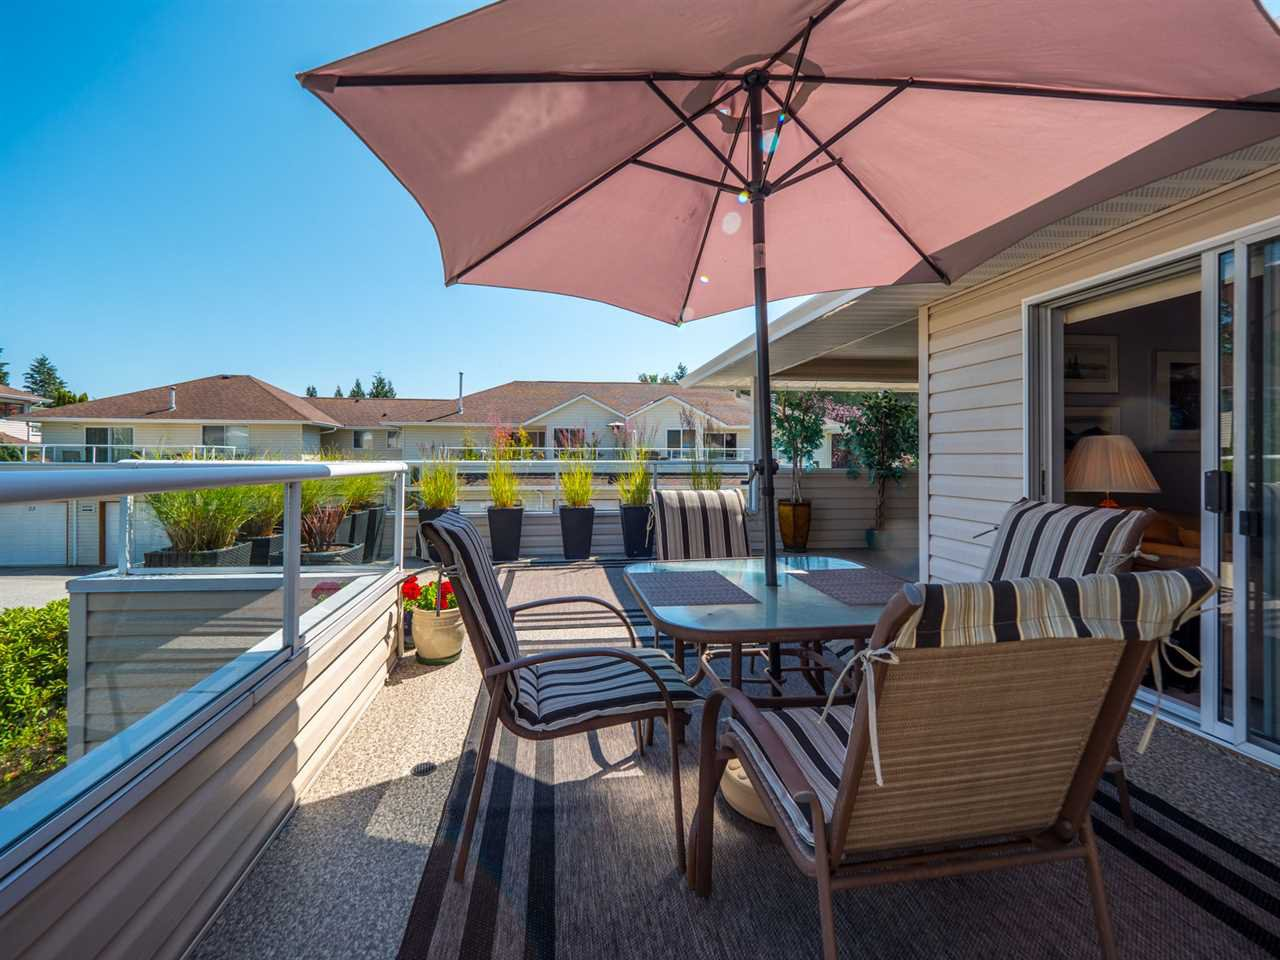 """Photo 15: Photos: 16 5630 TRAIL Avenue in Sechelt: Sechelt District Townhouse for sale in """"HIGHPOINT"""" (Sunshine Coast)  : MLS®# R2382780"""